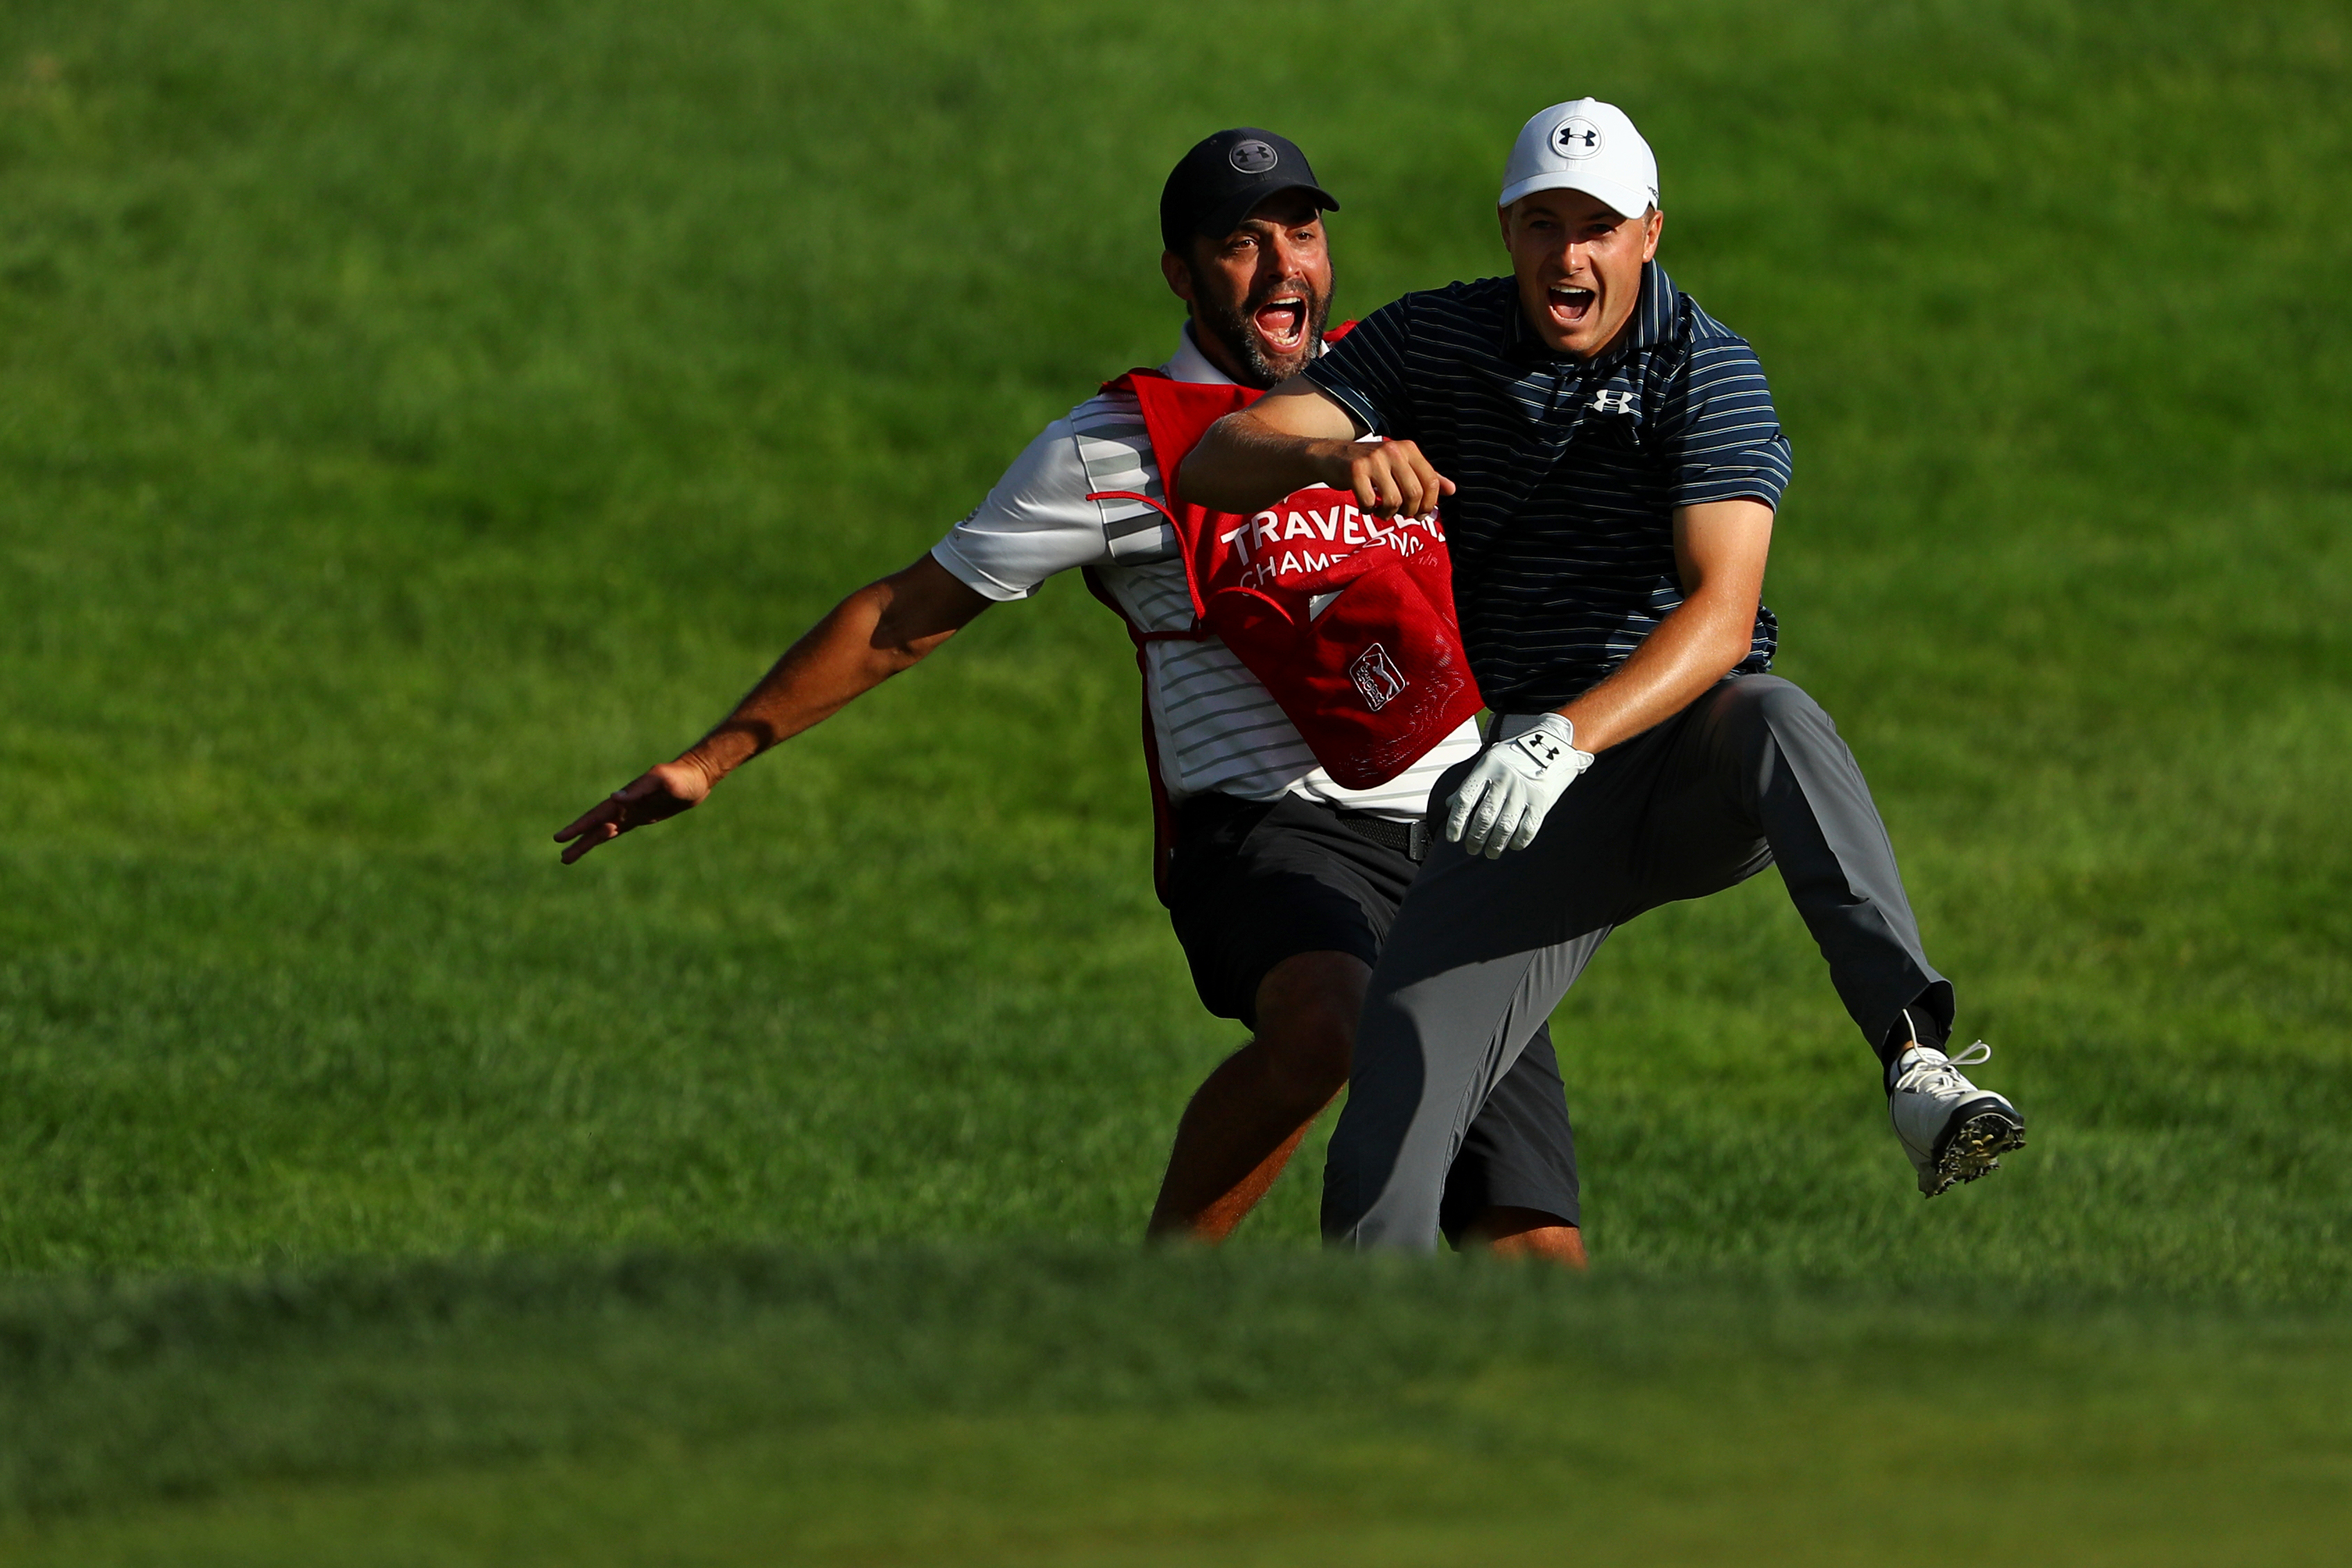 Travelers Championship 2017  Jordan Spieth is a magician and other things  we learned in Hartford - SBNation.com 2bca92c64